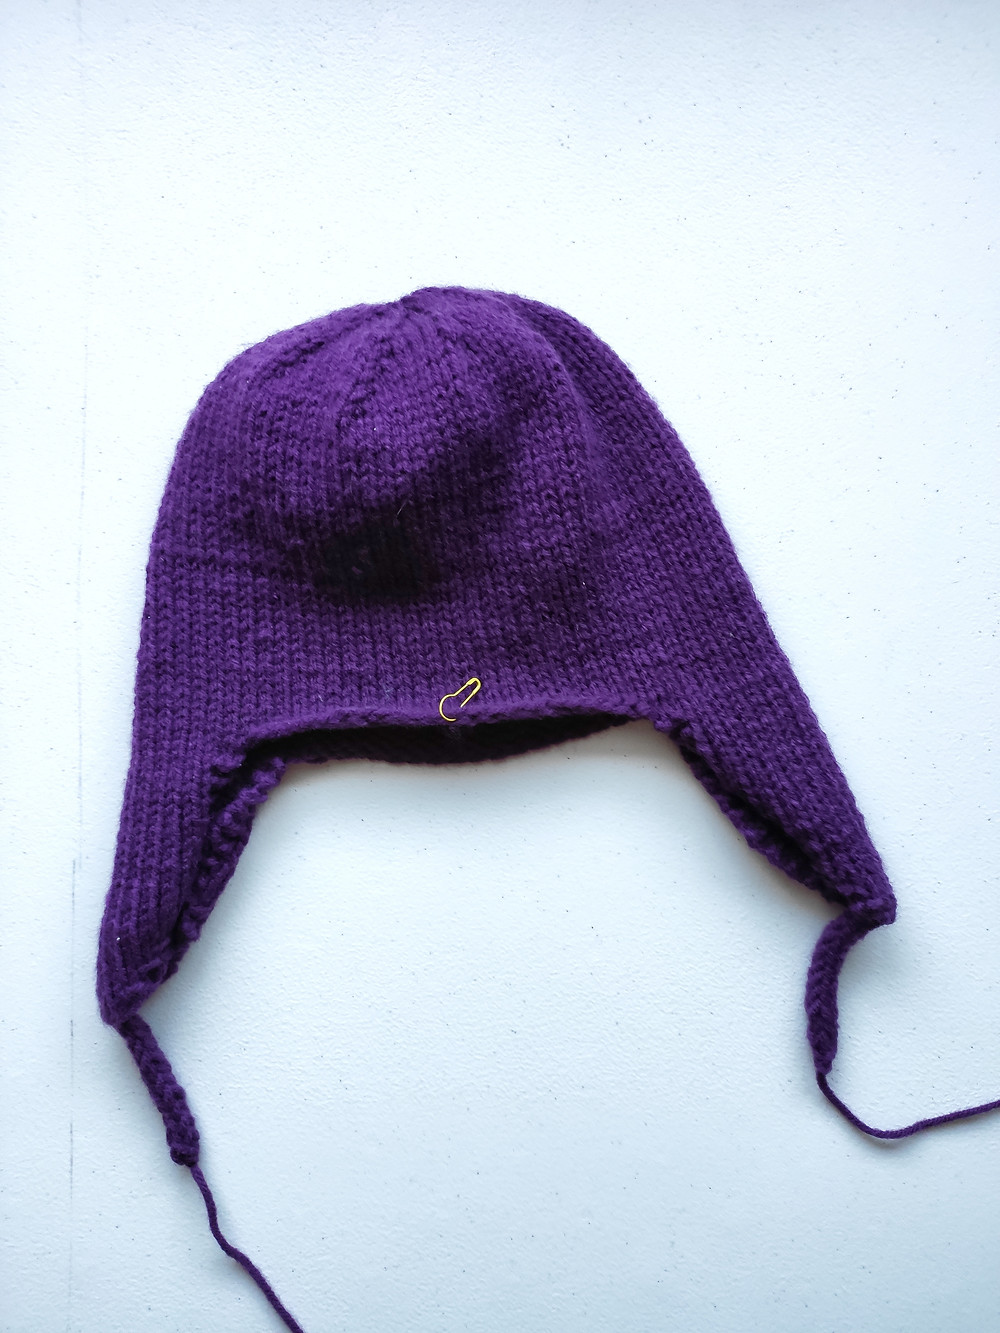 Finished plain earflap hat with short i-cord strings on the ends of the earflaps